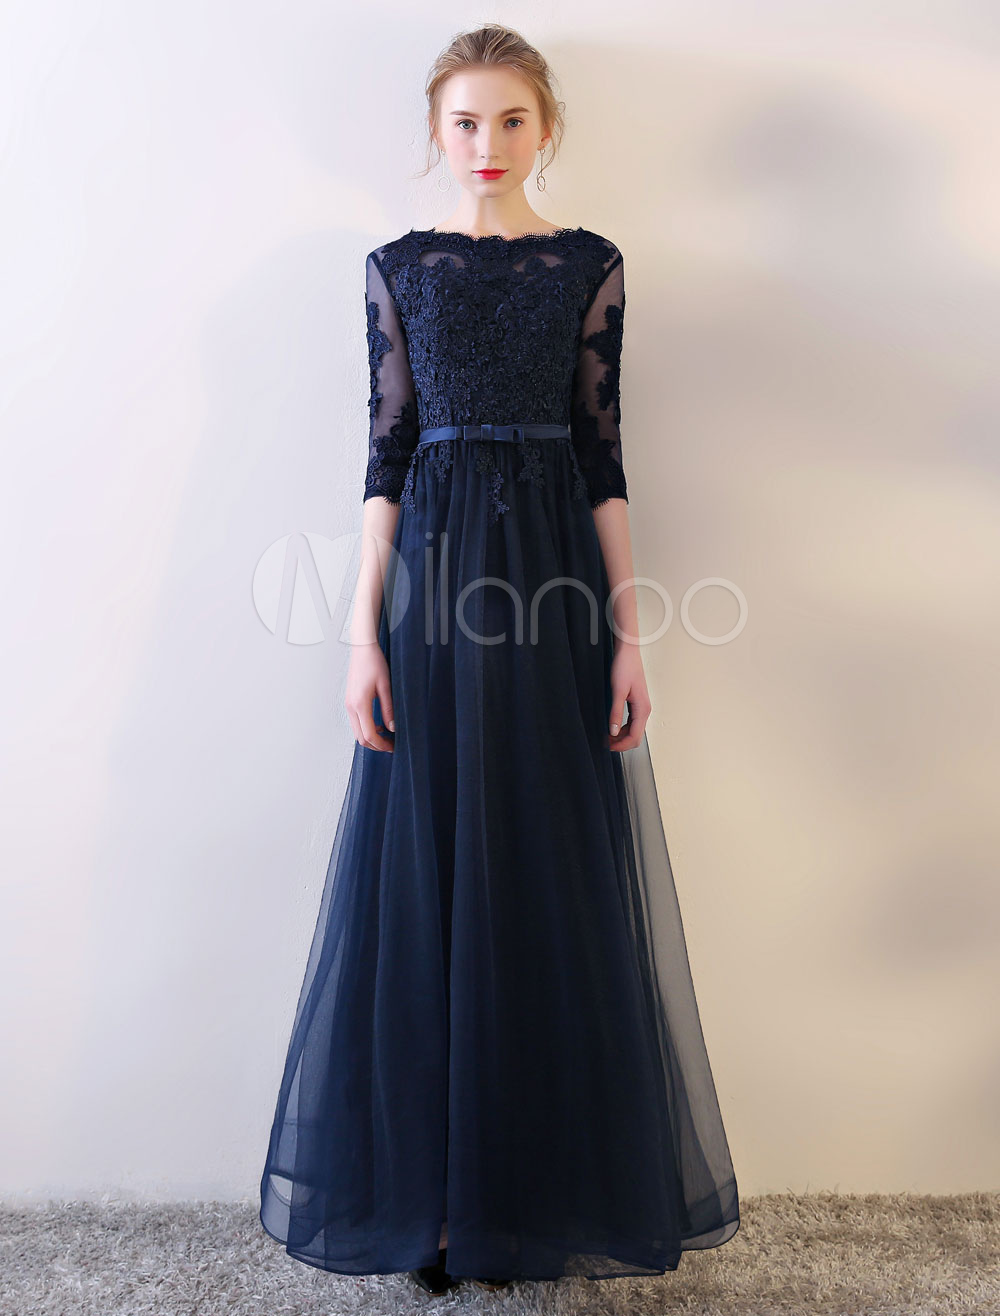 Buy Long Prom Dresses Dark Navy Evening Dress Half Sleeve Bow Sash Illusion Bateau Lace Tulle Floor Length Formal Dress for $96.79 in Milanoo store